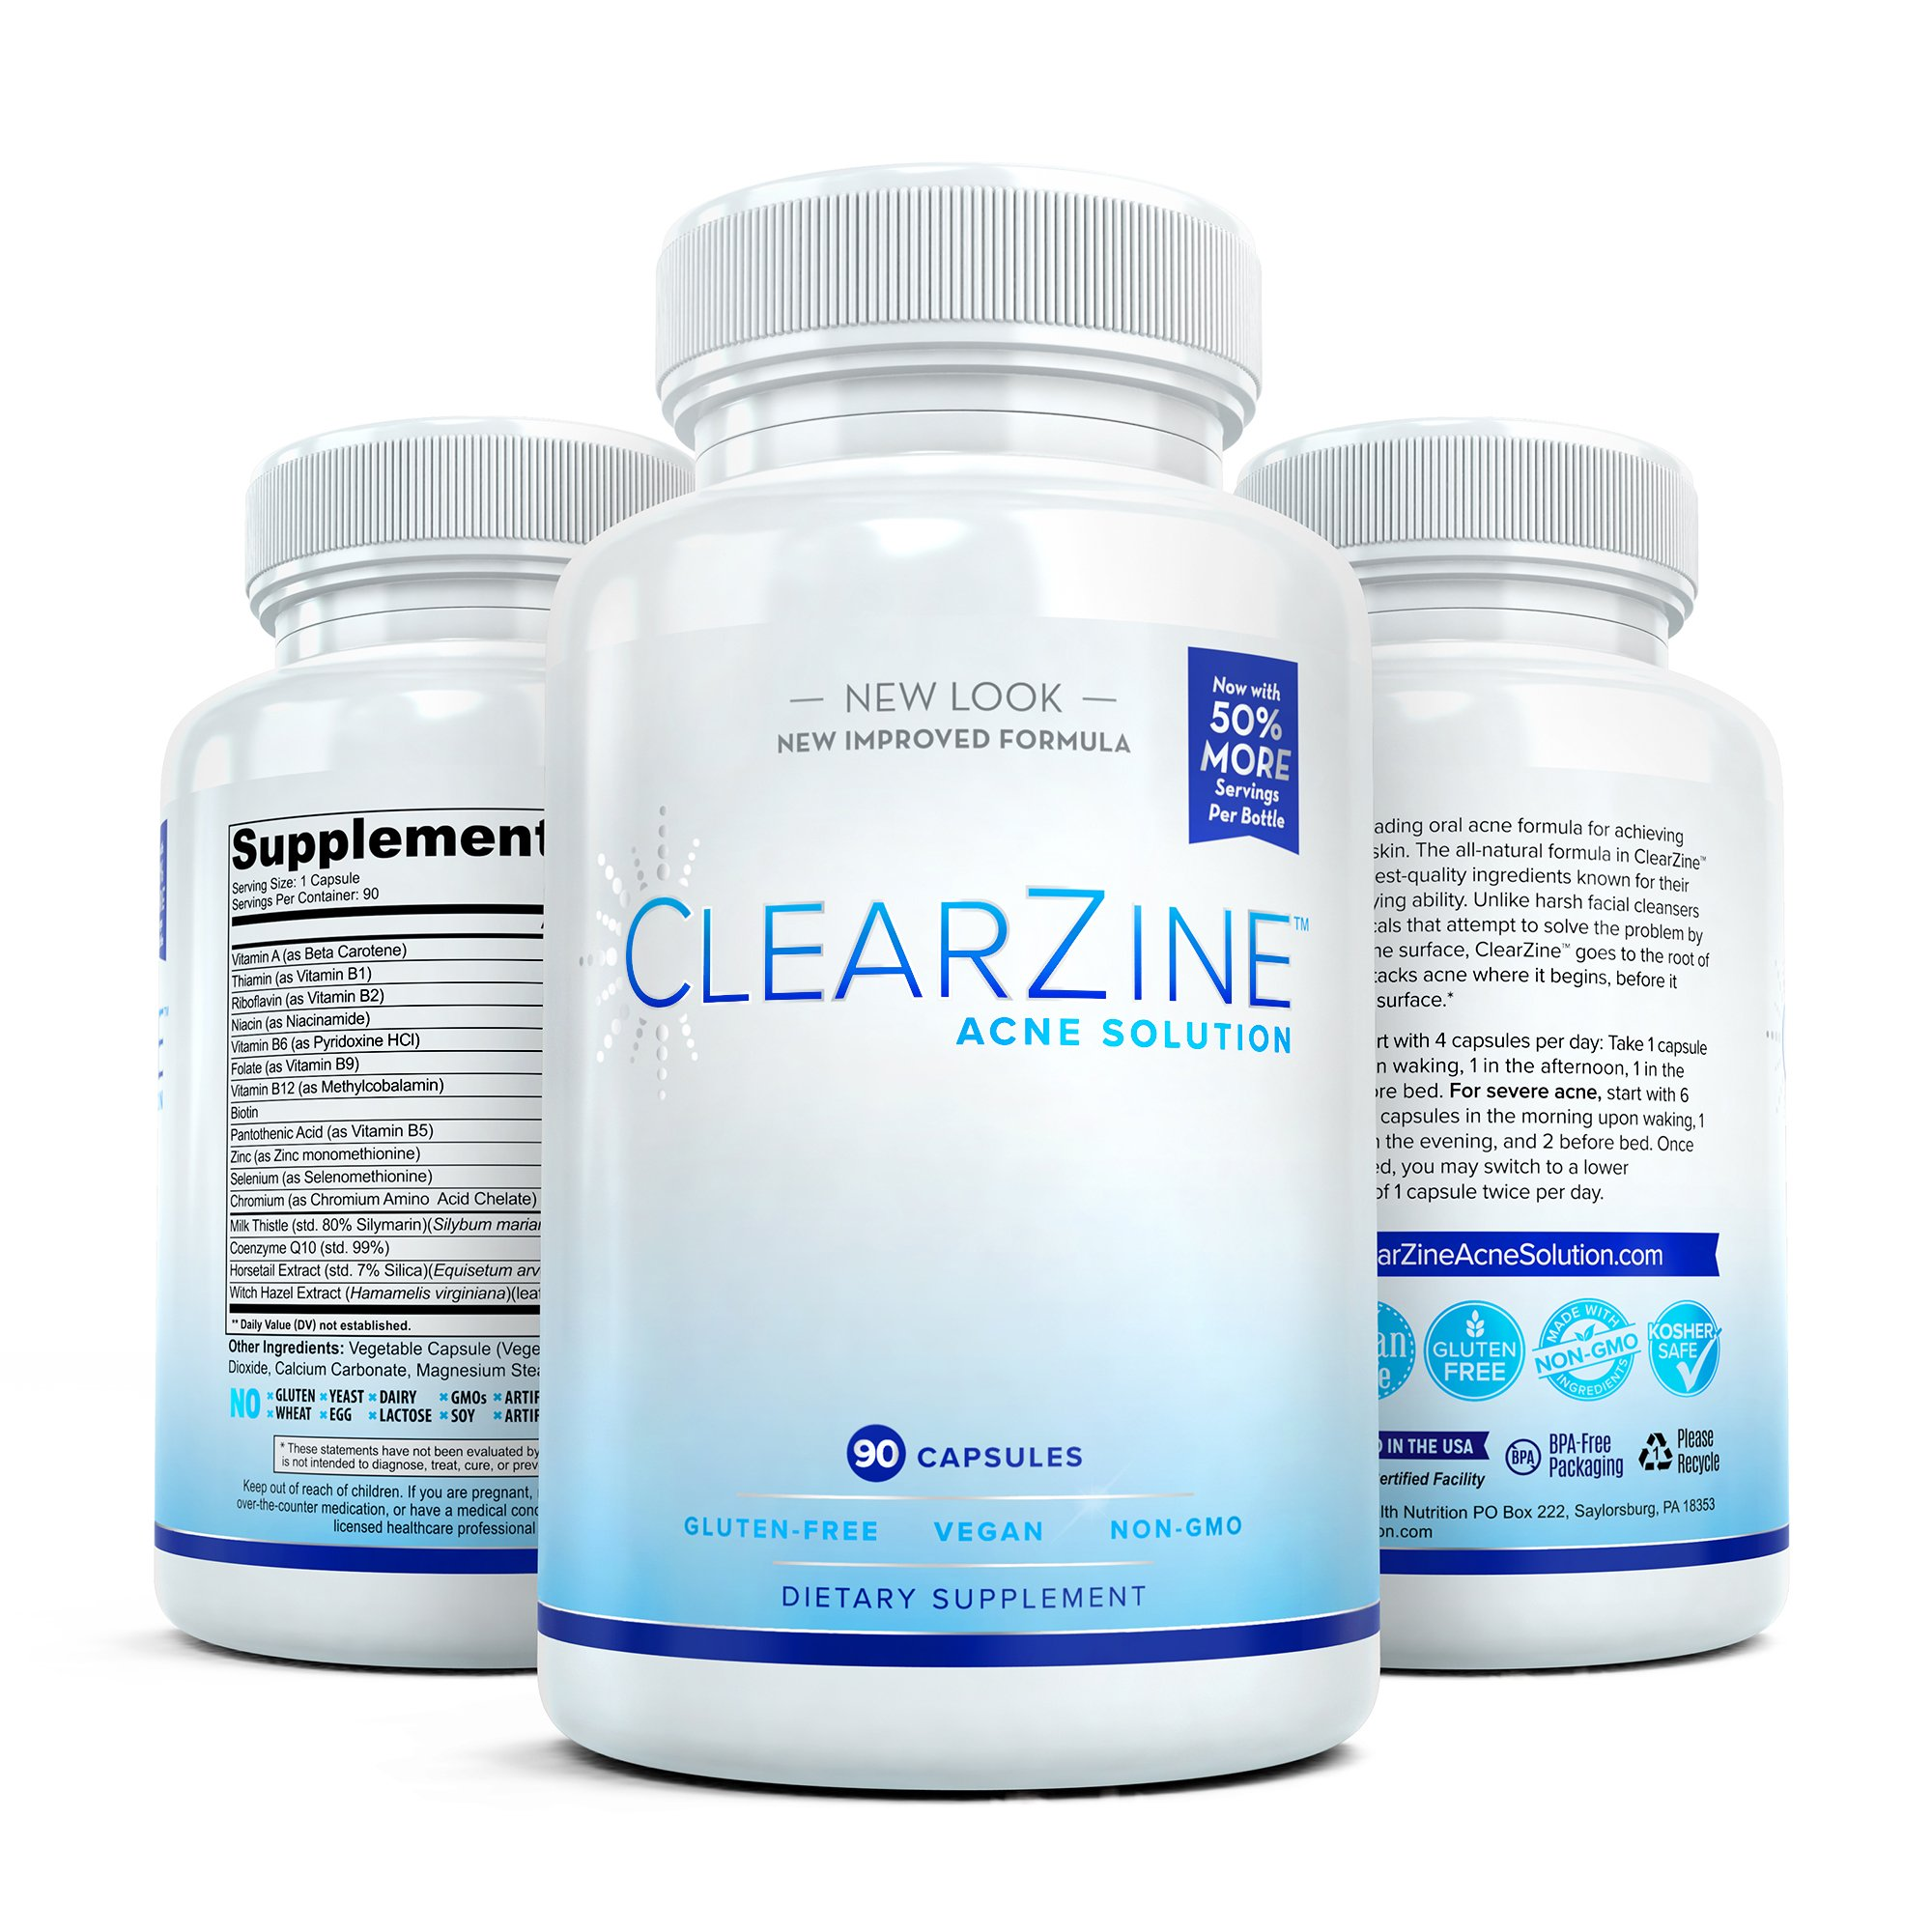 ClearZine Acne Pills for Teens & Adults   Clear Skin Supplement, Vitamins for Hormonal & Cystic Acne   Stop Breakouts, Oily Skin with Milk Thistle, Pantothenic Acid & Zinc, 2 Bottles, 90 Caps Each by ClearZine (Image #8)